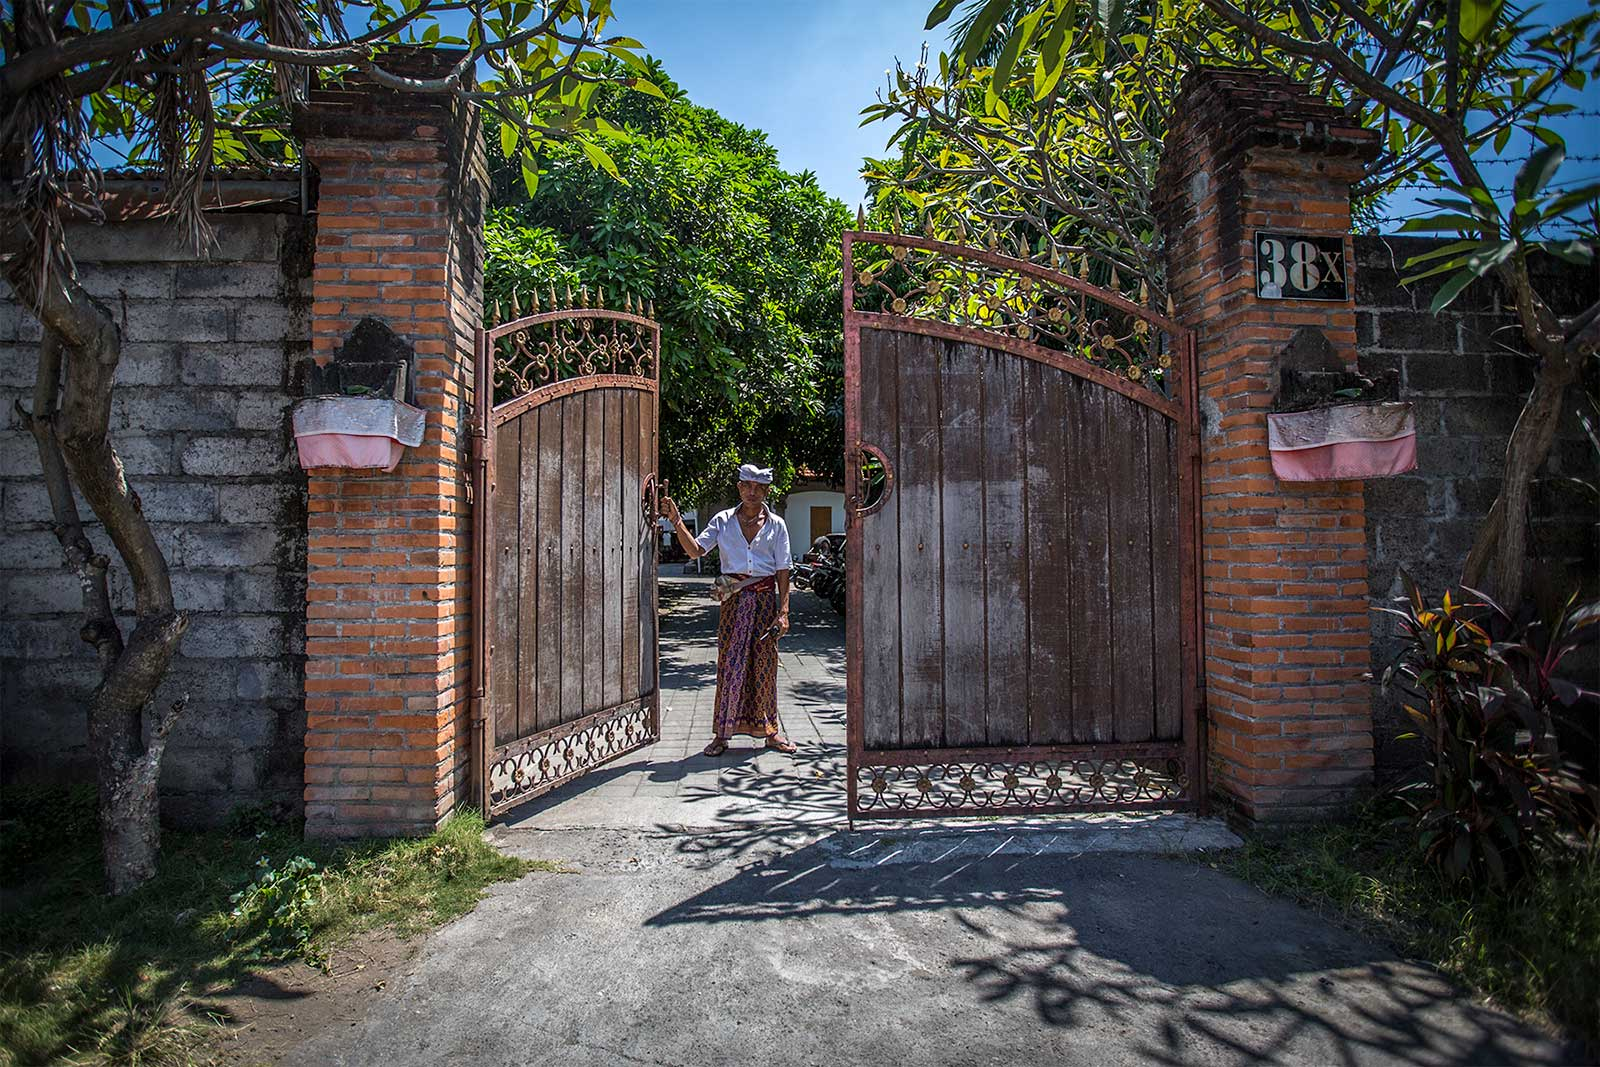 Guard standing at gate Psylo's HQ entrance, Bali